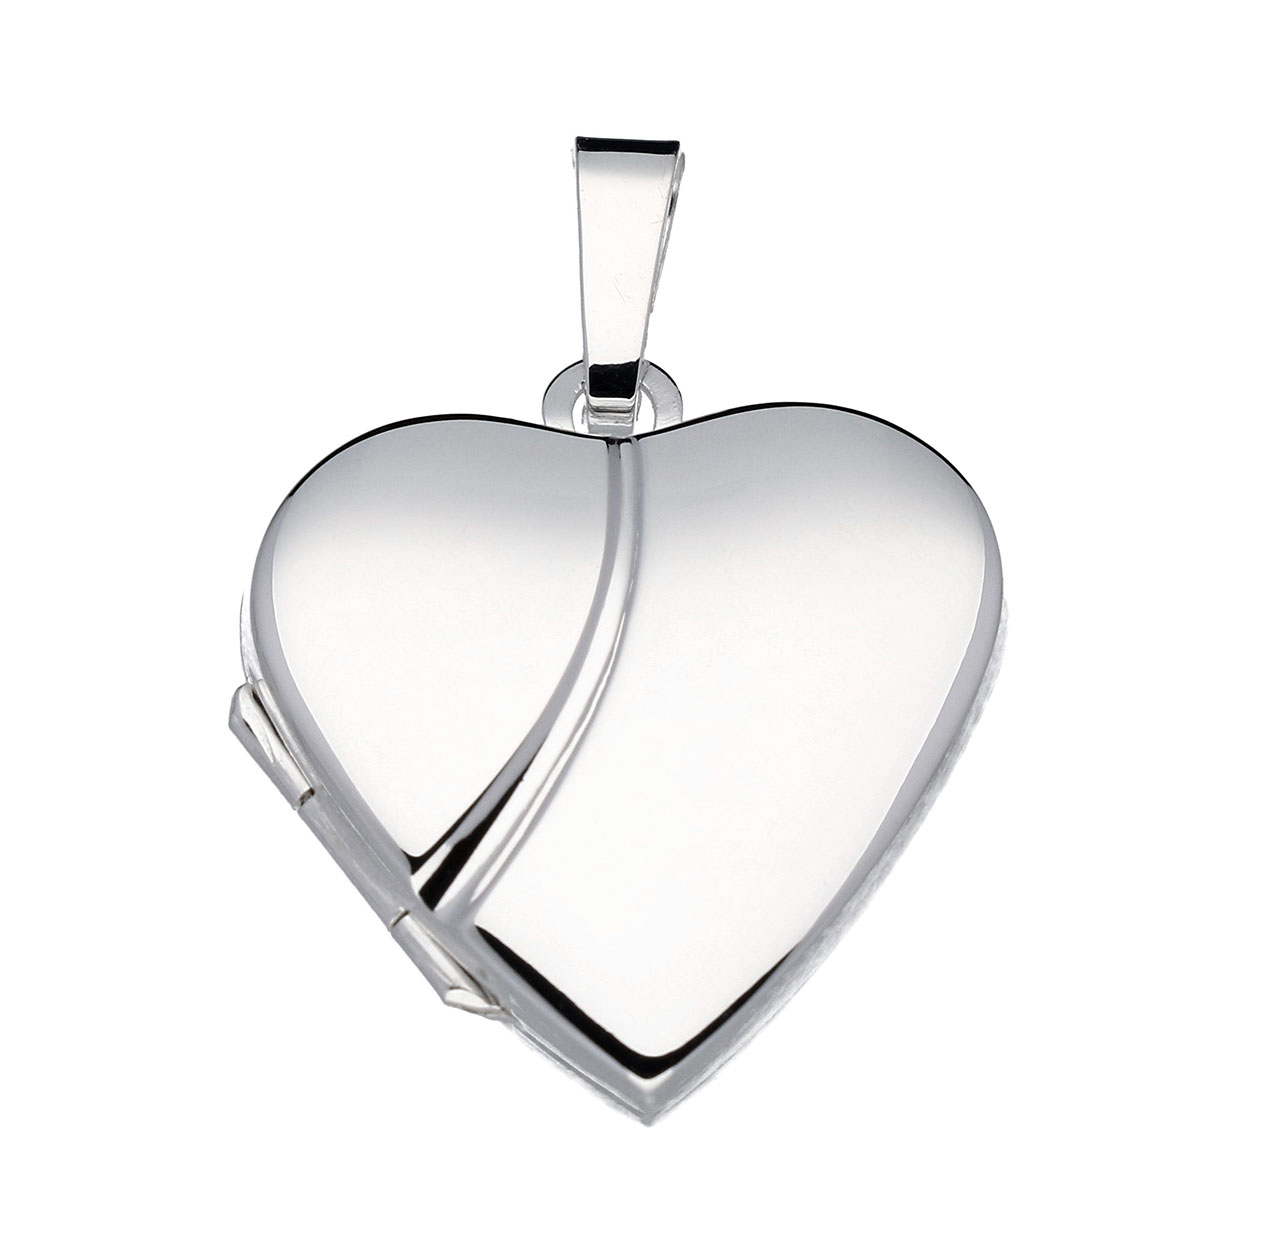 Zilveren Medaillon 'Hart' glad 20 mm 145.0036.00